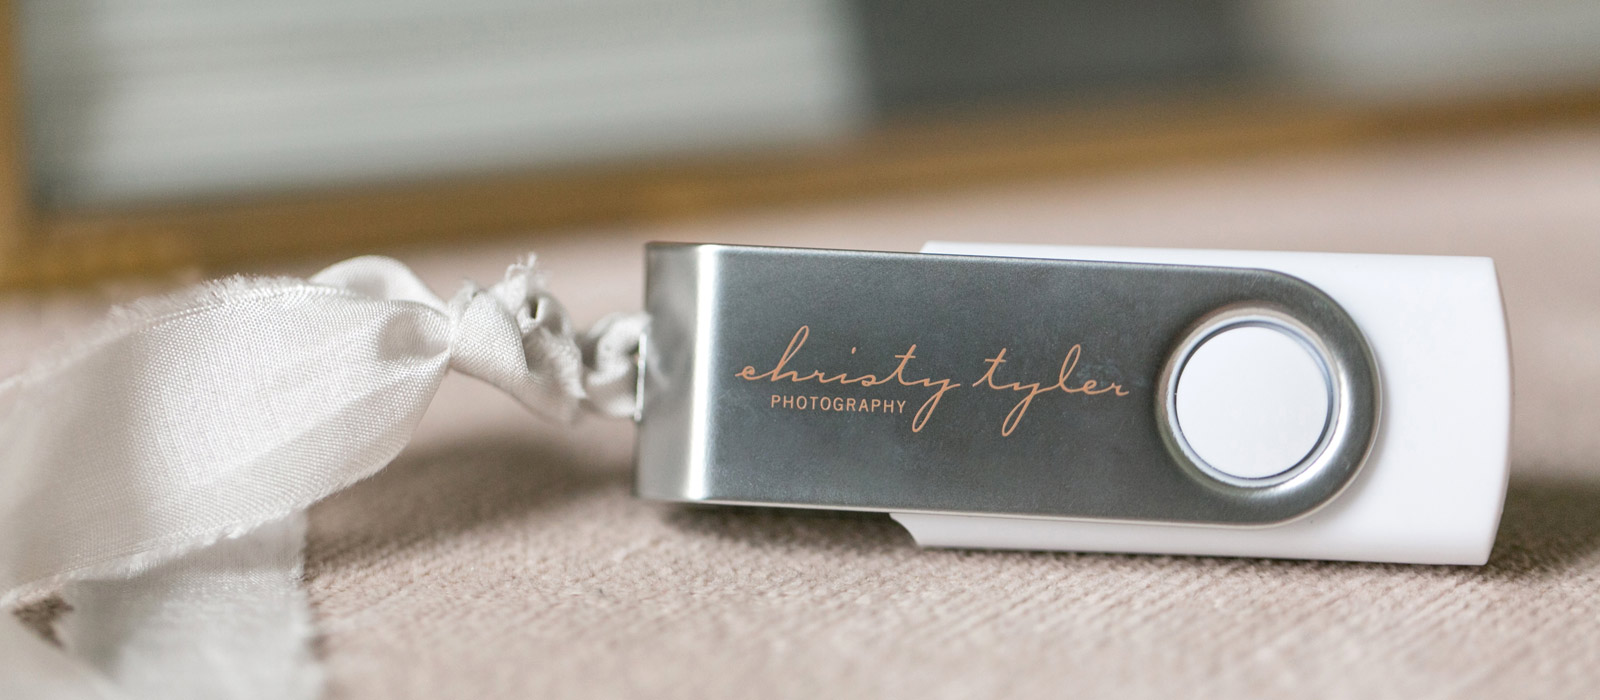 Christy Tyler Photography Flash Drives